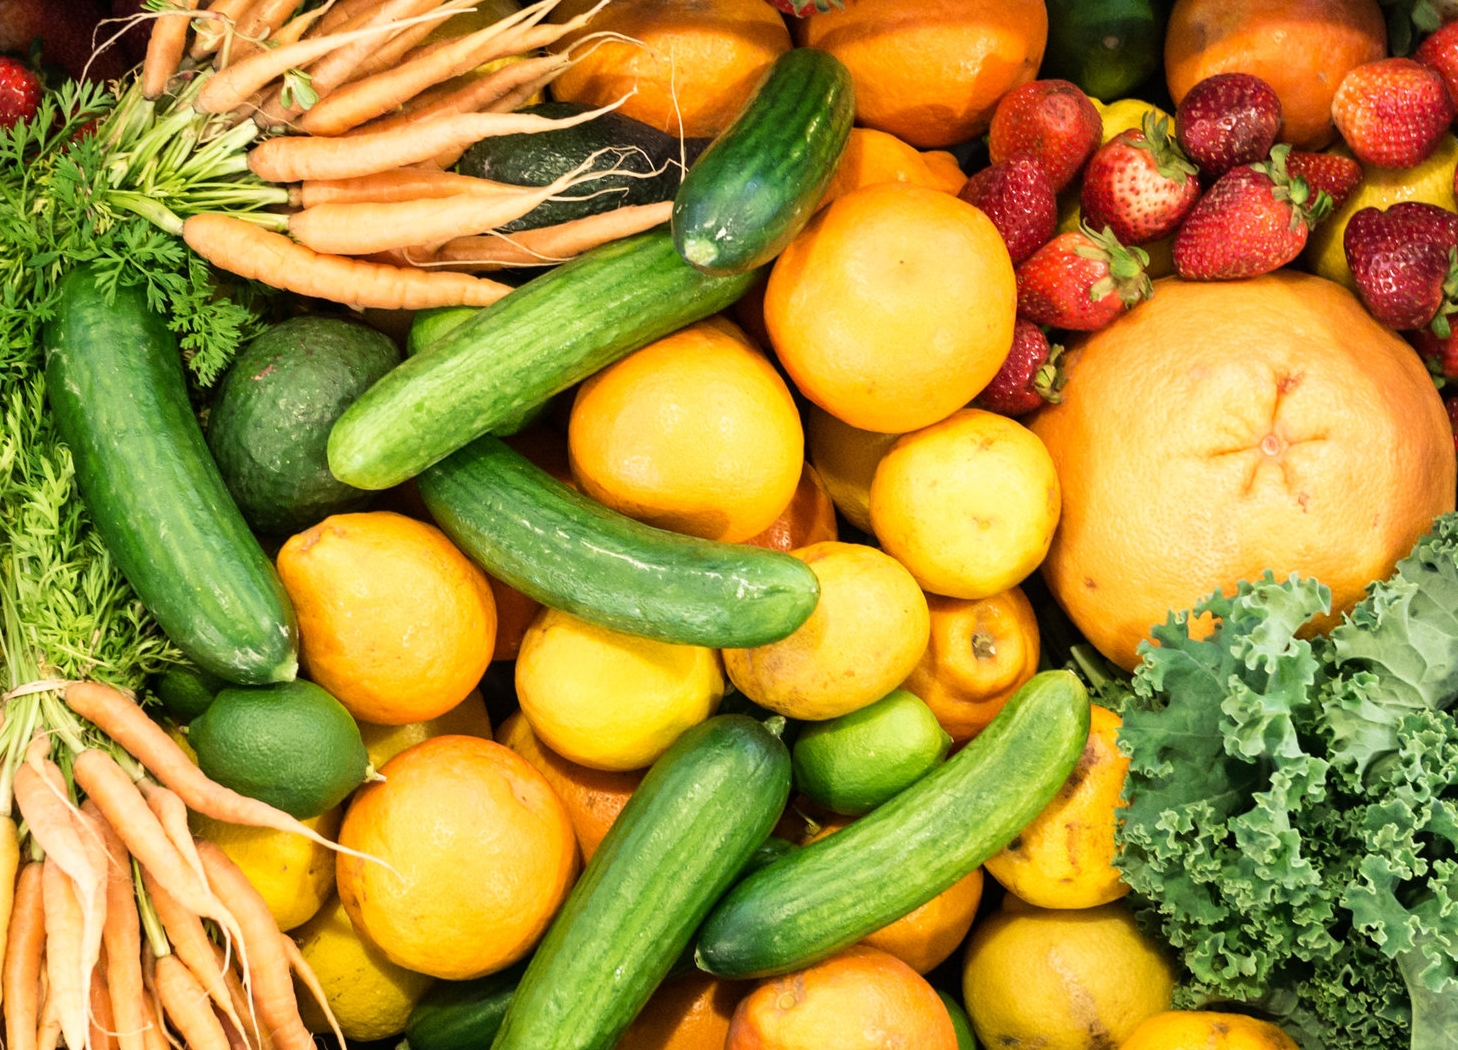 Plant foods lower inflammation – and inflammation is blamed for many diseases, such as heart disease, autoimmune disorders, diabetes, Alzheimer's,strokes and even depression.